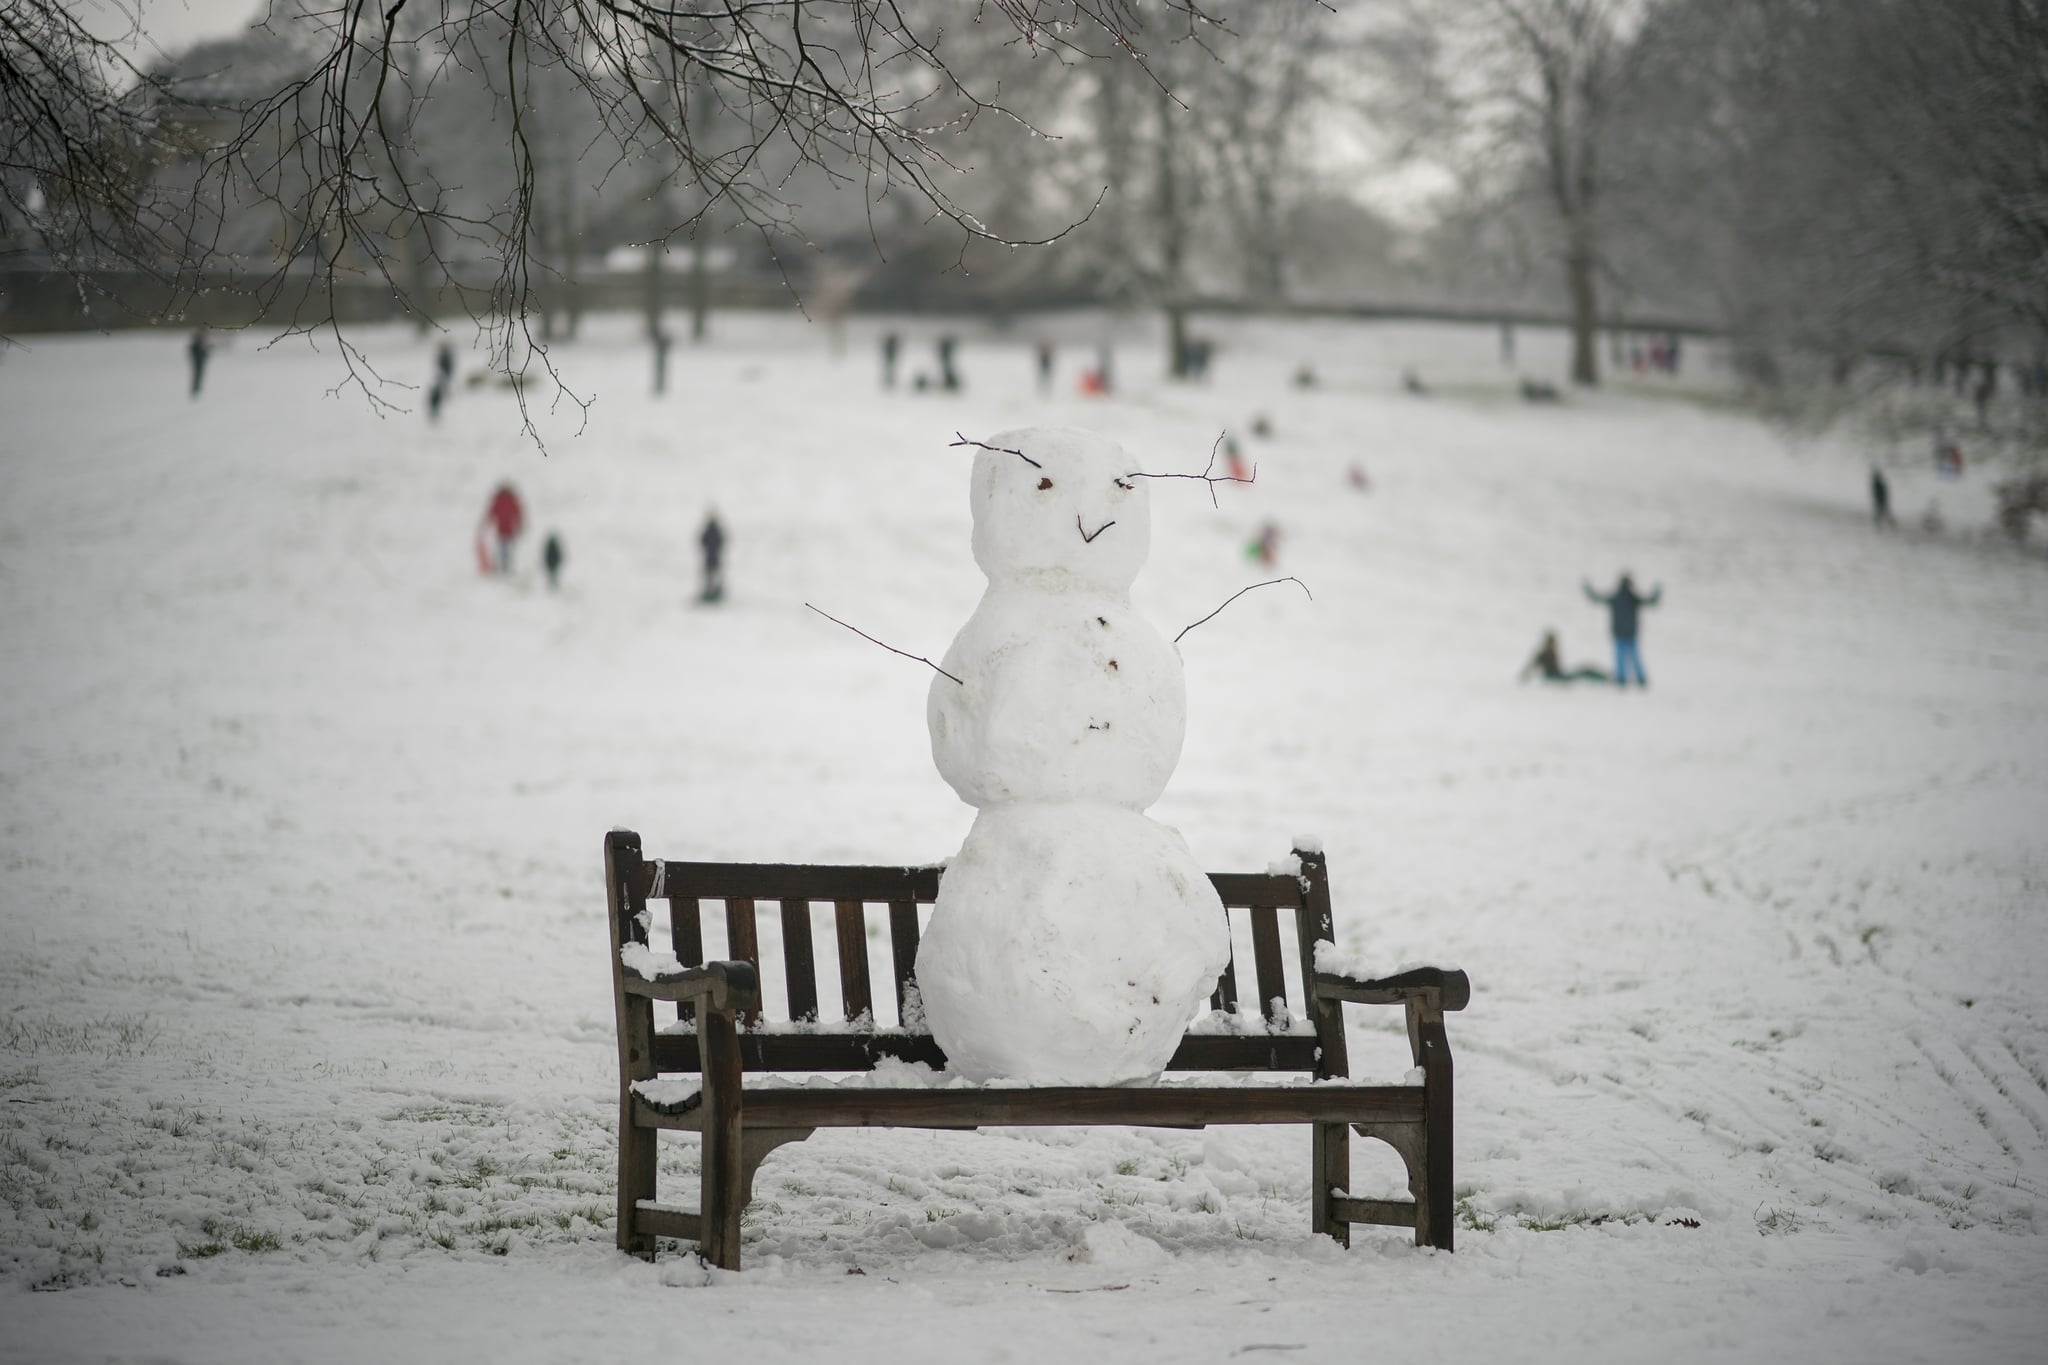 HALIFAX, ENGLAND - DECEMBER 29: A snowman takes in the wintry view from a bench in Shibden Hall Park on December 29, 2017 in Halifax, England.  Travelers are being warned of dangerous roads conditions across the UK, as wintry weather brings snow and ice and an amber warning from the MET Office.(Photo by Christopher Furlong/Getty Images)